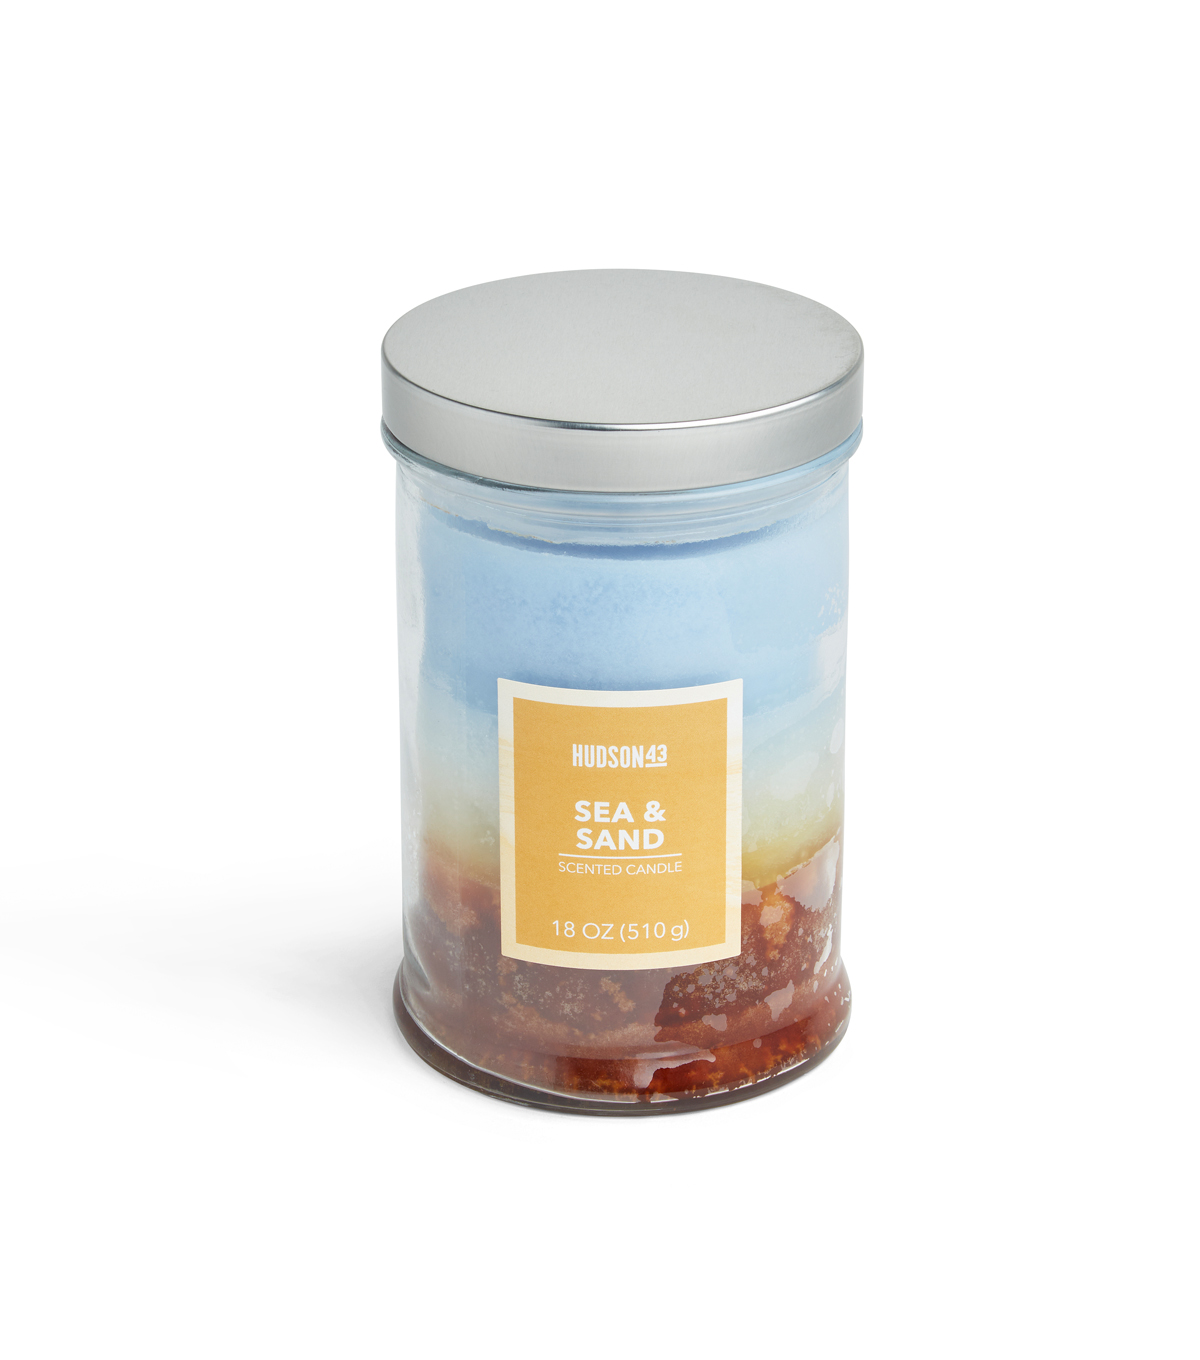 Hudson 43™ Candle & Light Collection 18oz Triple Pour Sea And Sand Jar